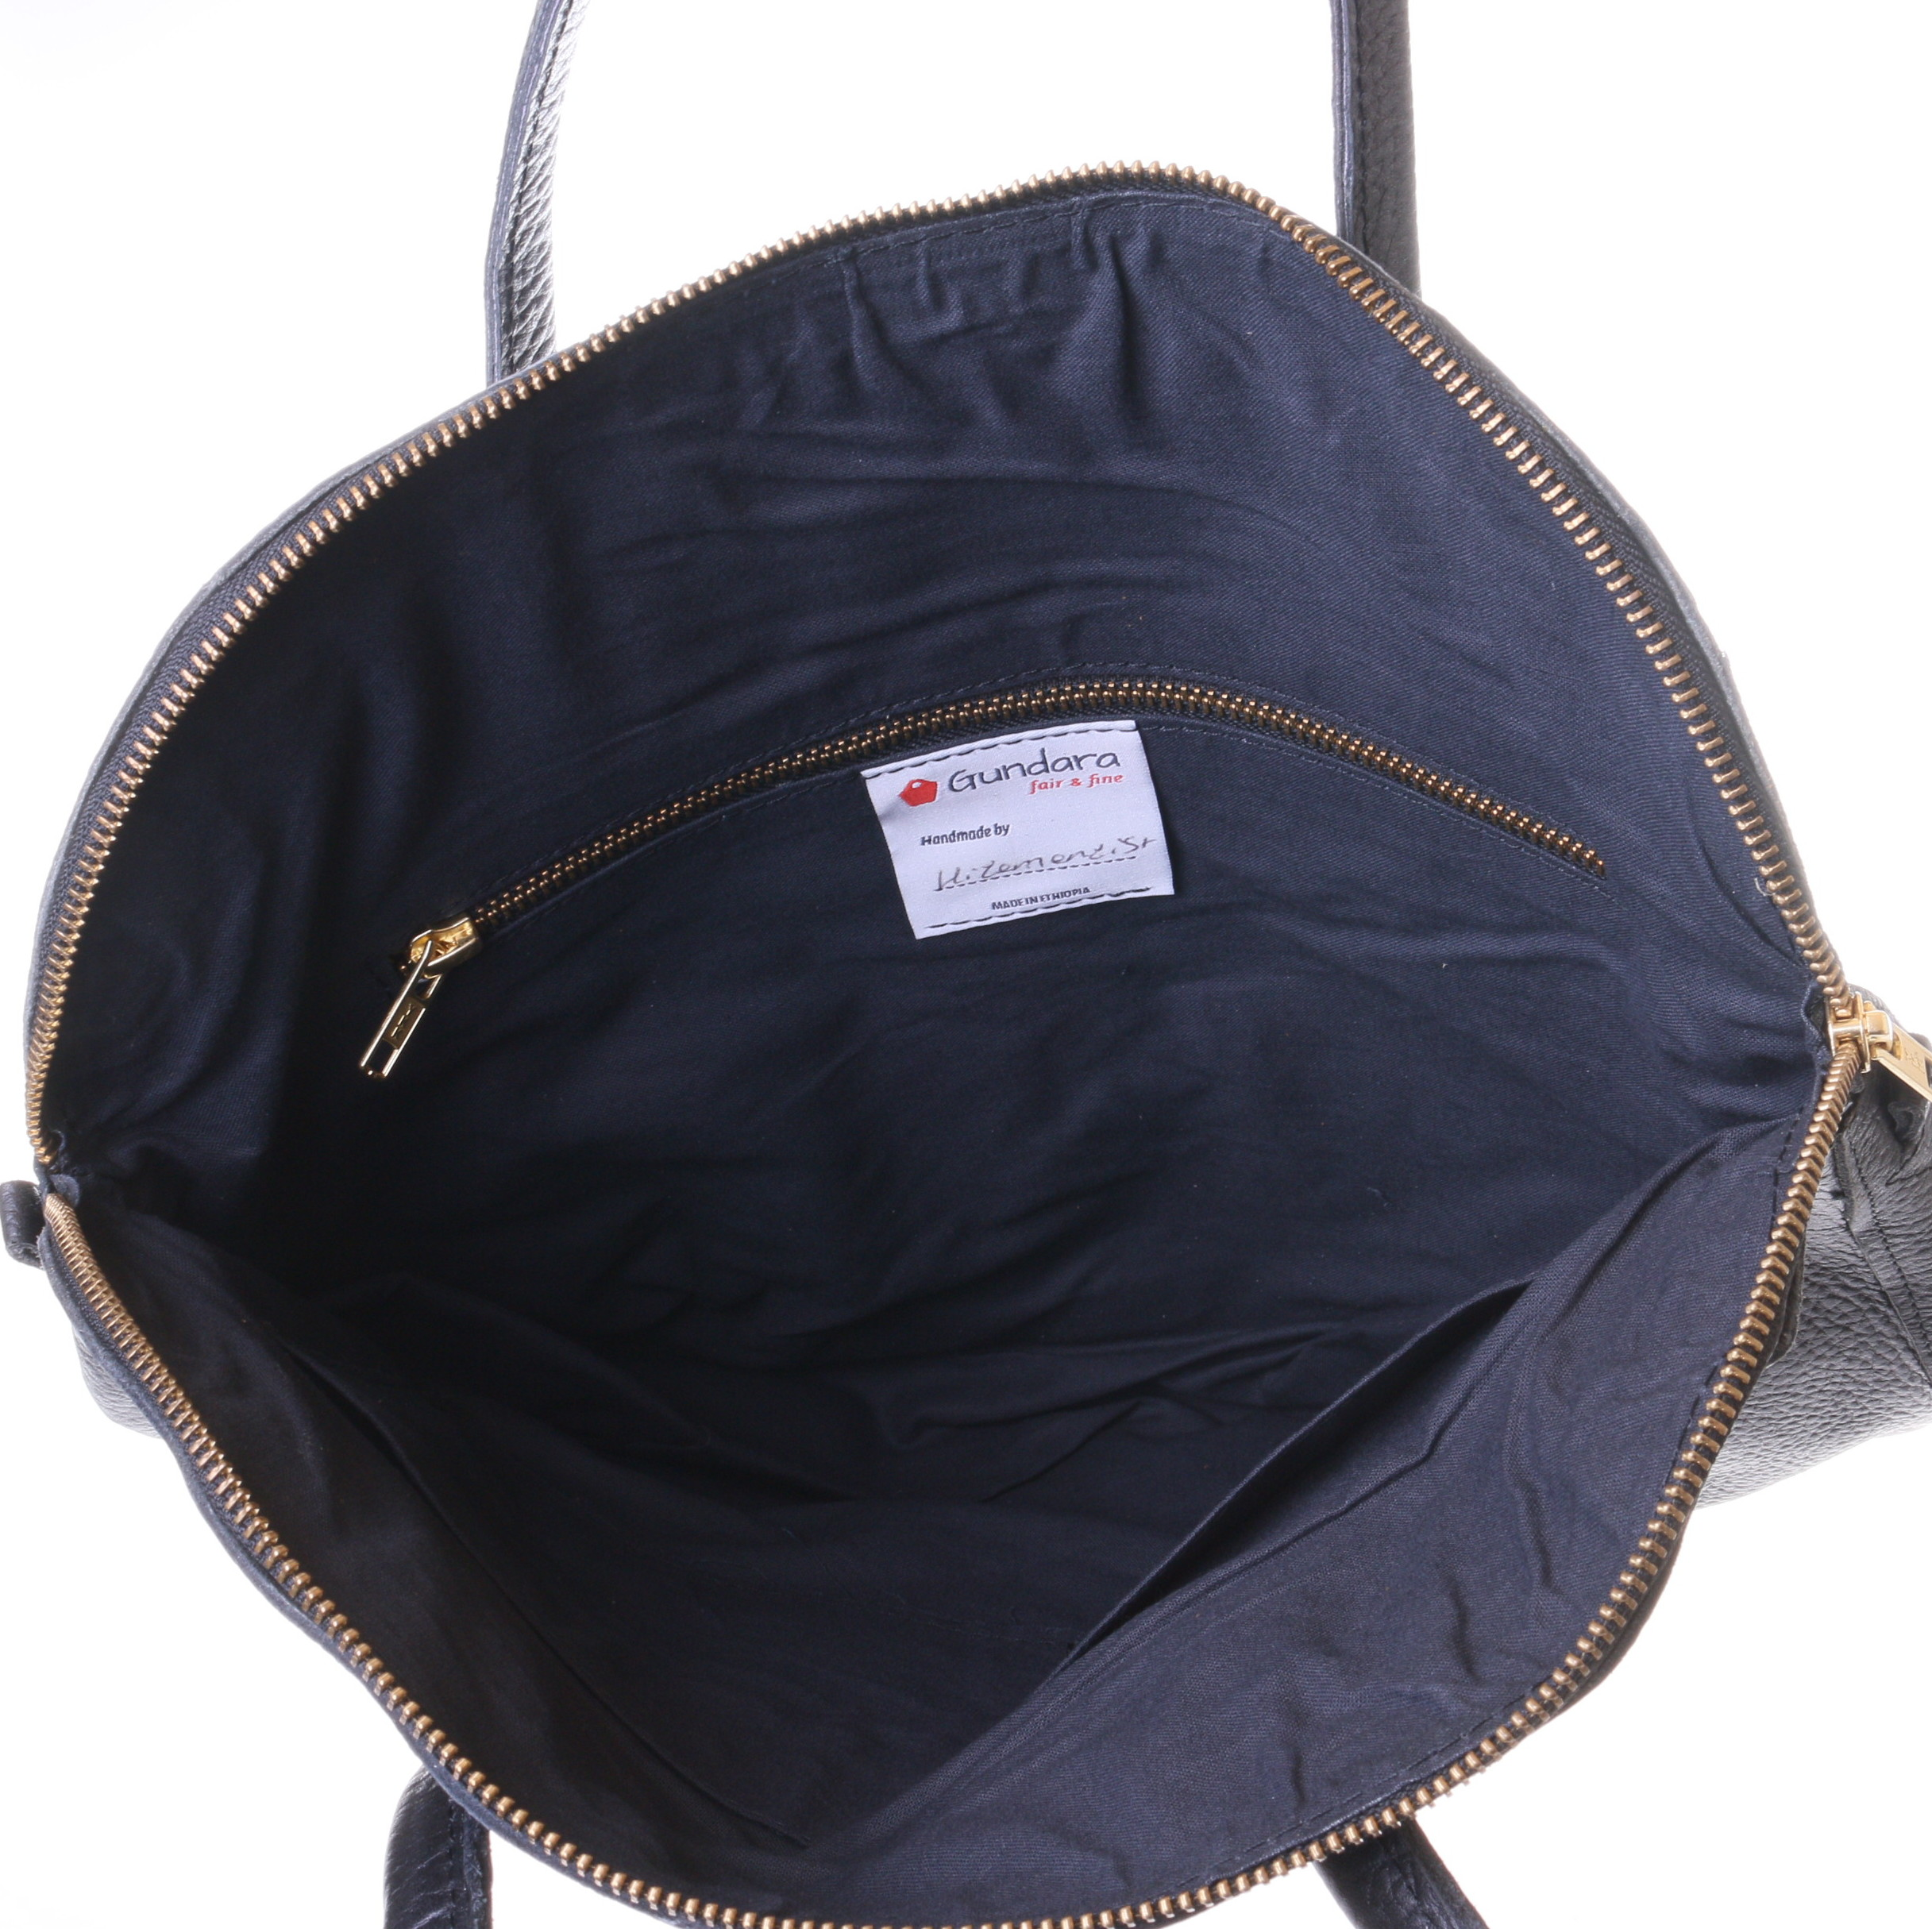 Ayana black leather bag with black lining